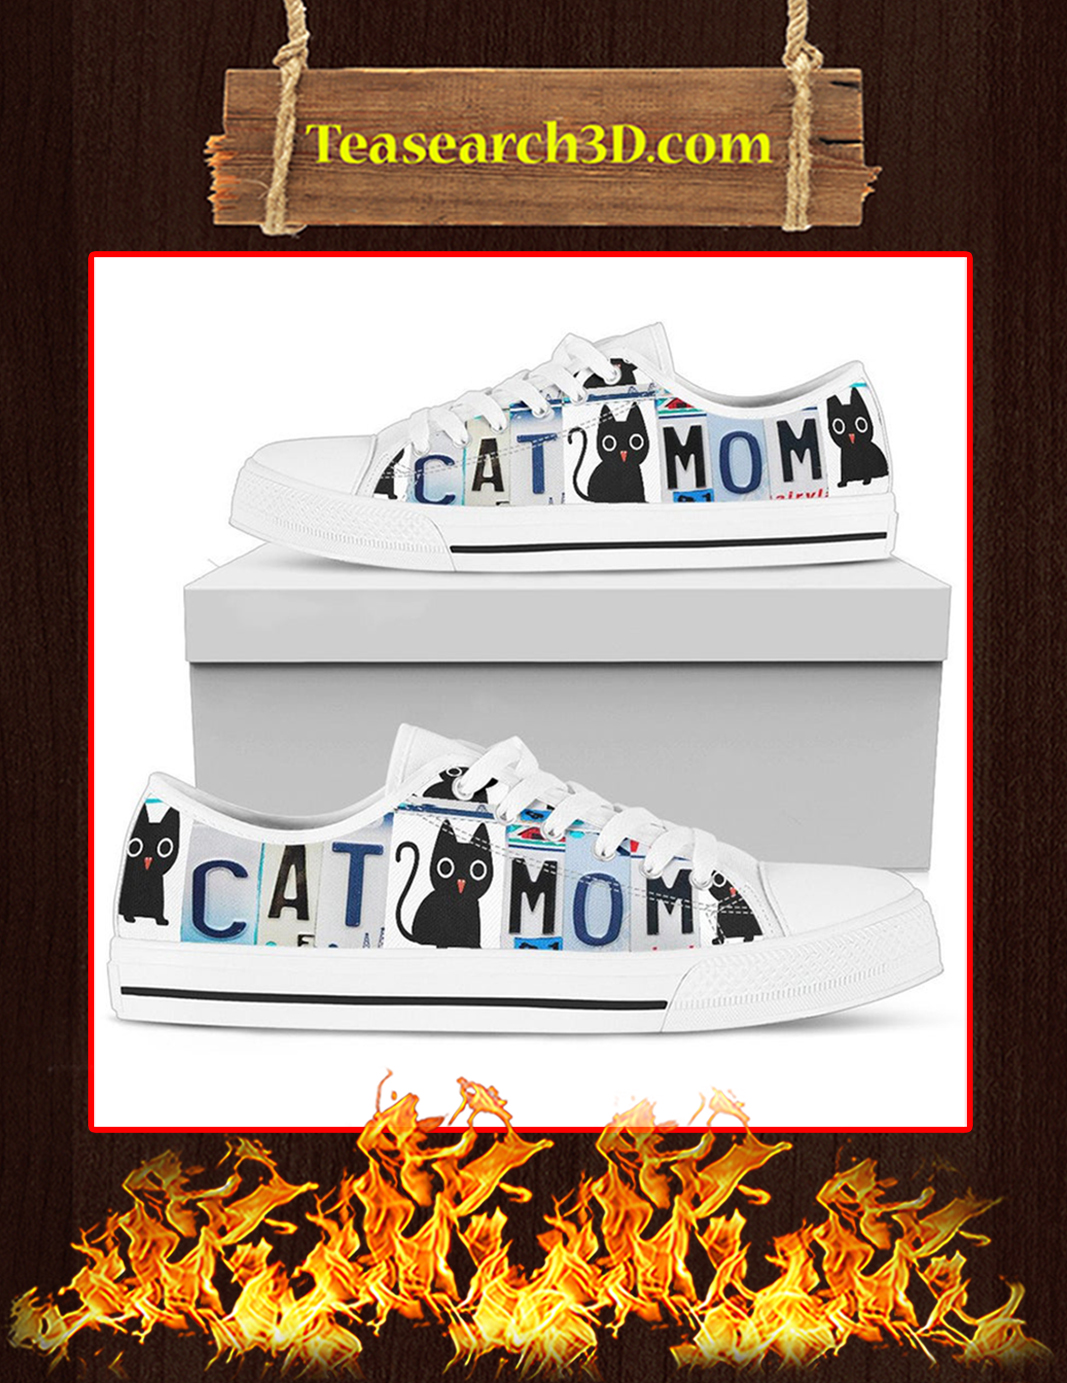 Cat Mom Low Top Shoes - Pic 2